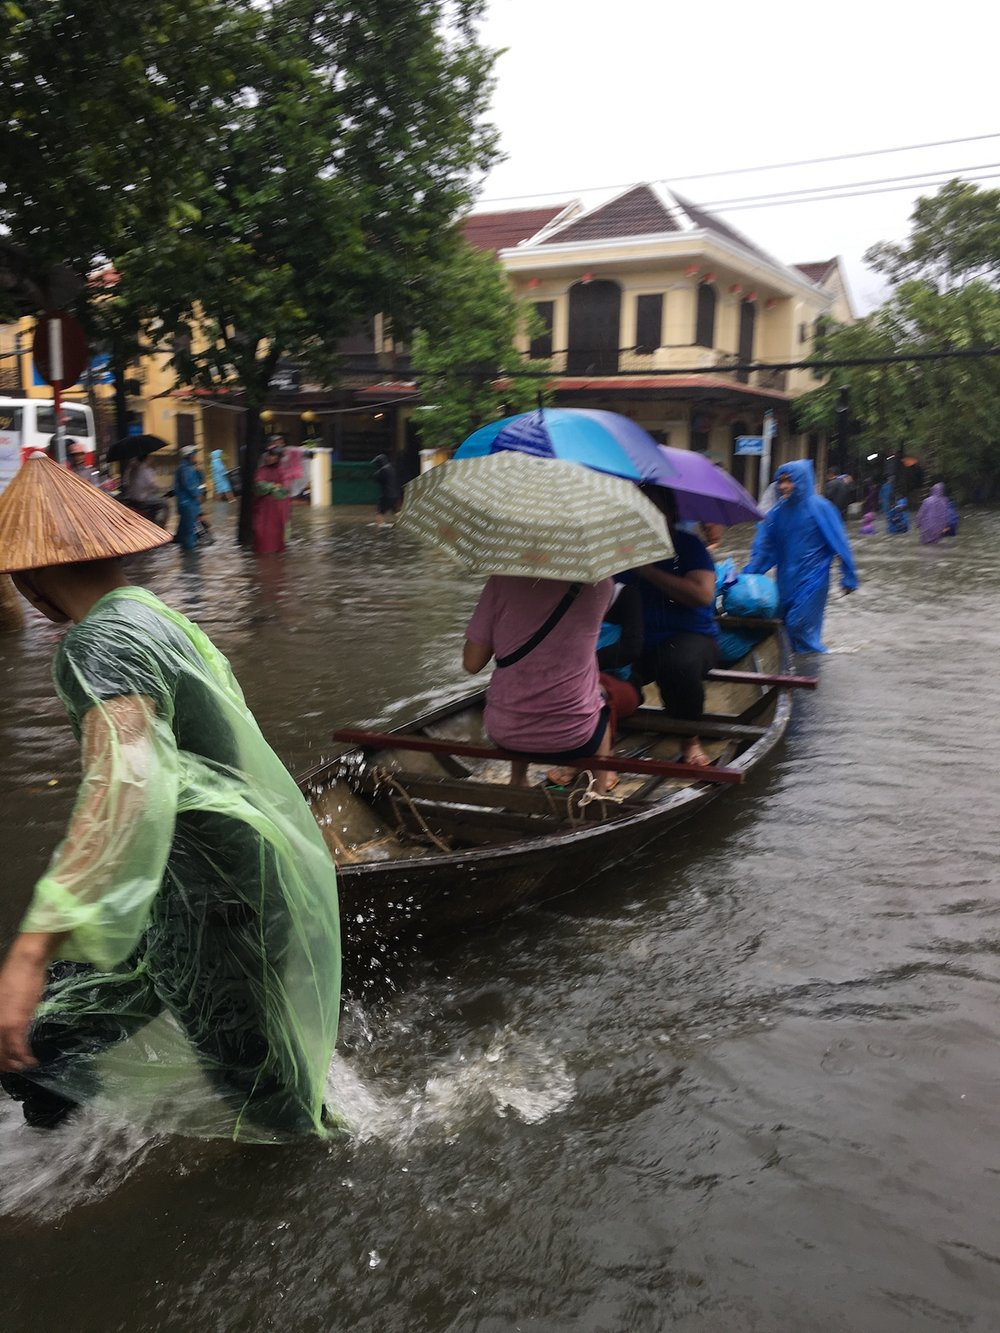 Typhoon Damrey in Hoi An, Vietnam, 2017. Photo by Chelsea Jeheber